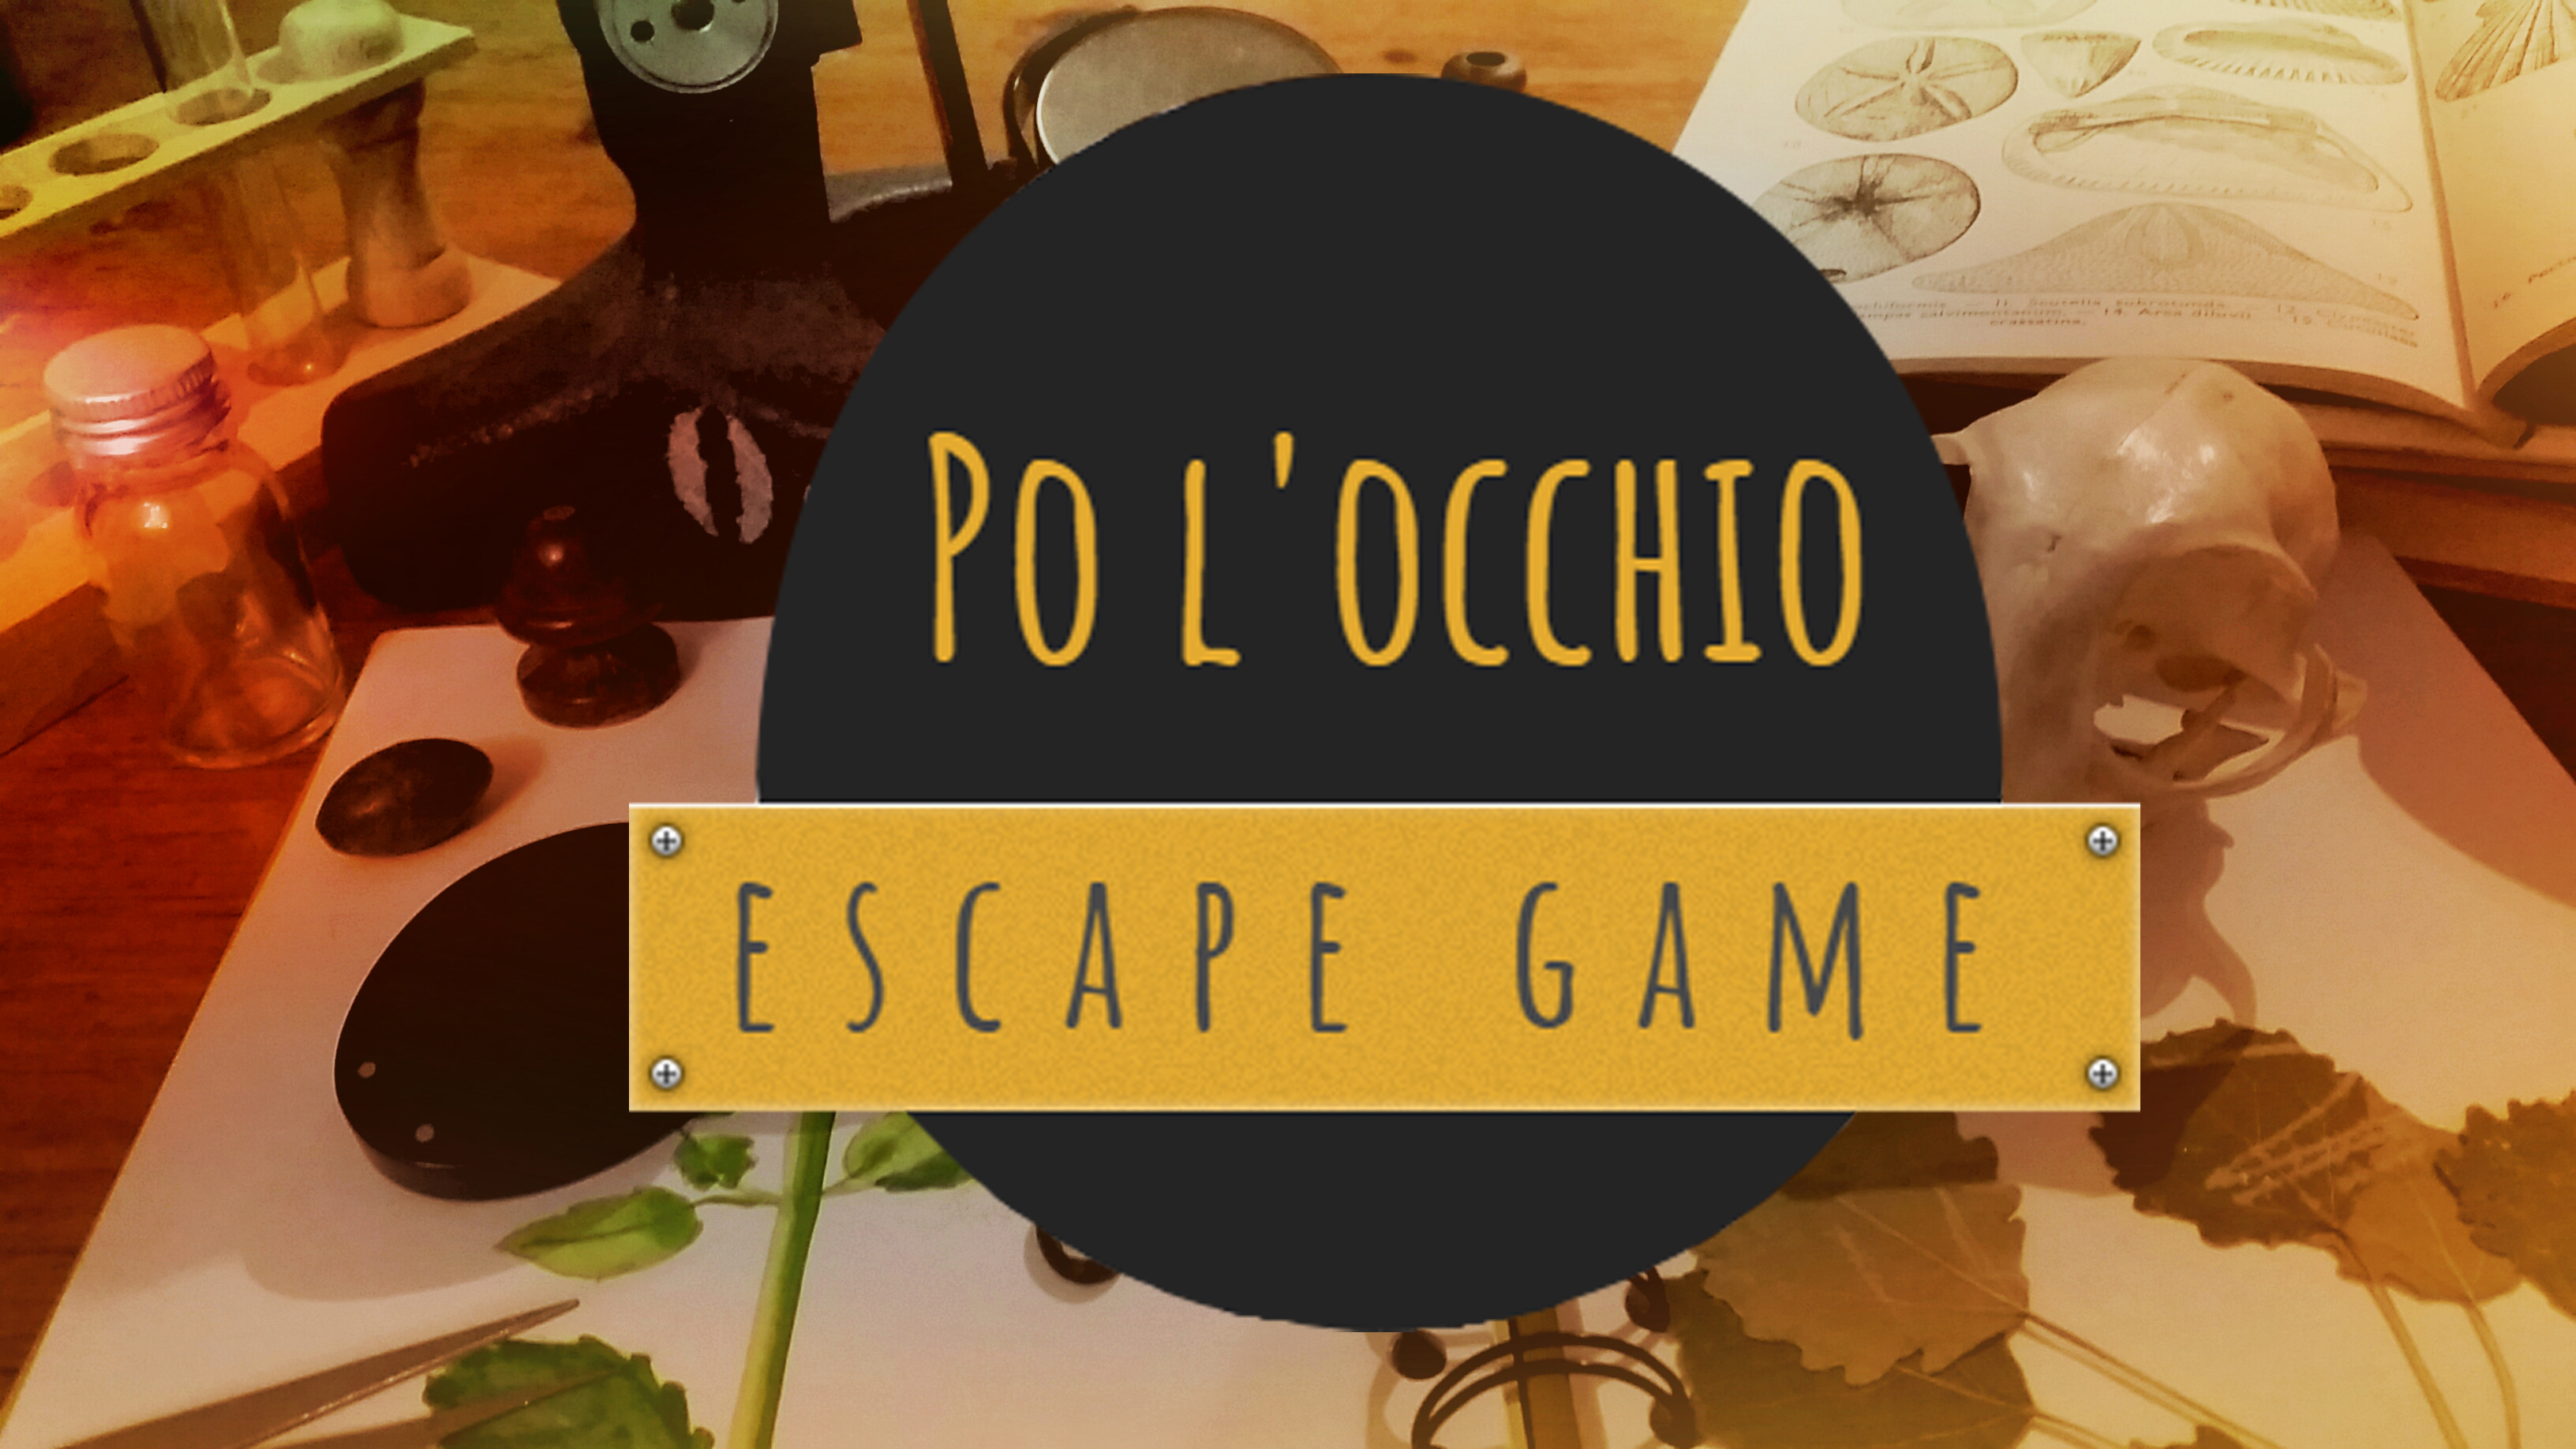 Po l'occhio – Escape game